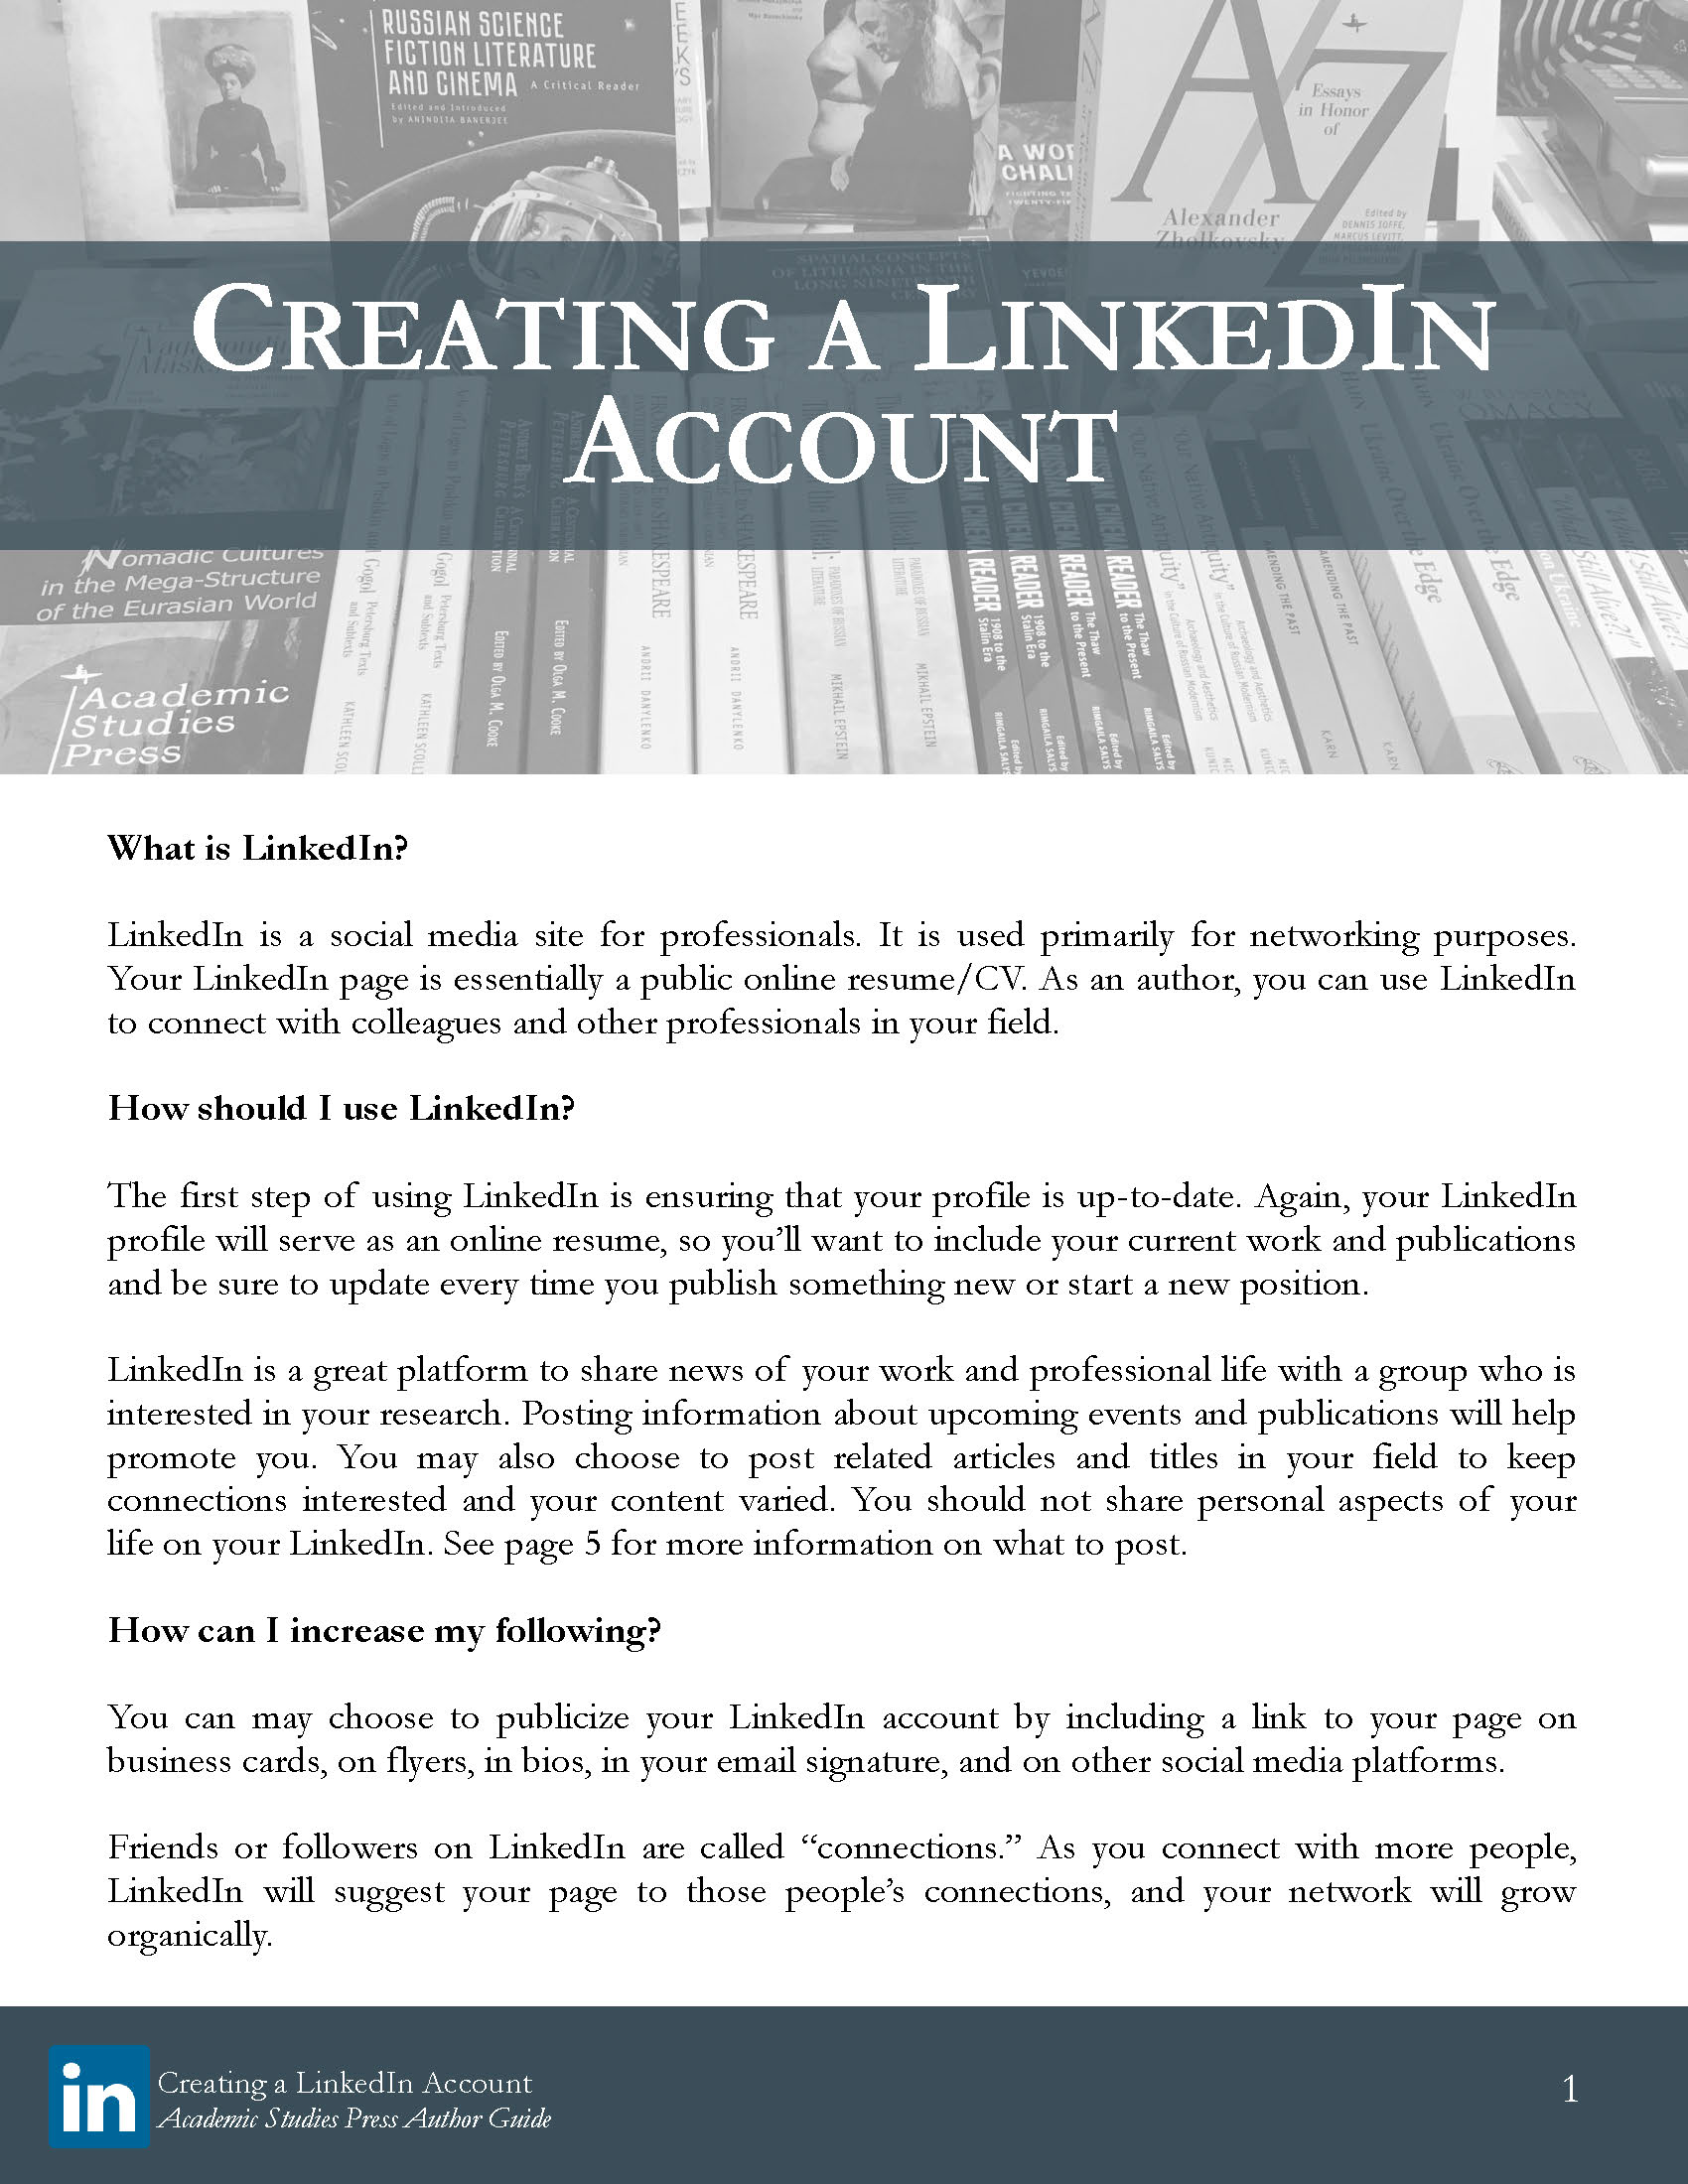 Author Guide: Creating a LinkedIn Account